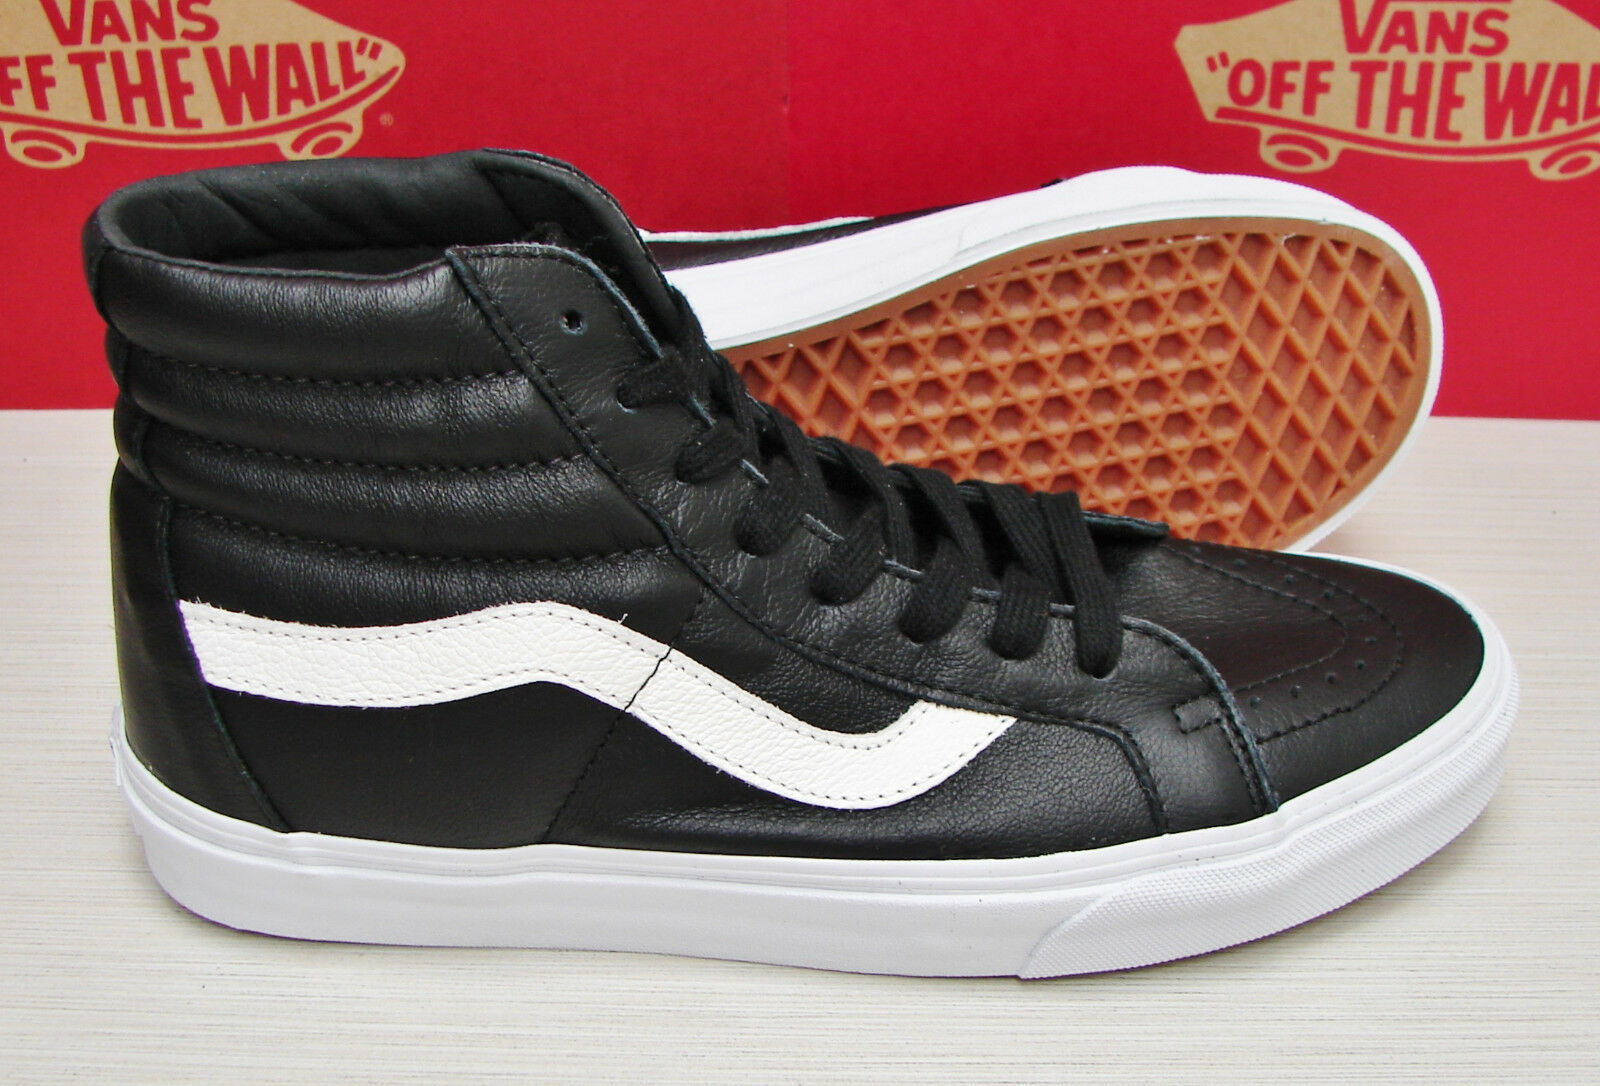 Vans SK8 Hi Reissue Premium Leather Black VN000ZA0EW9 Women's Shoes Size 6.5